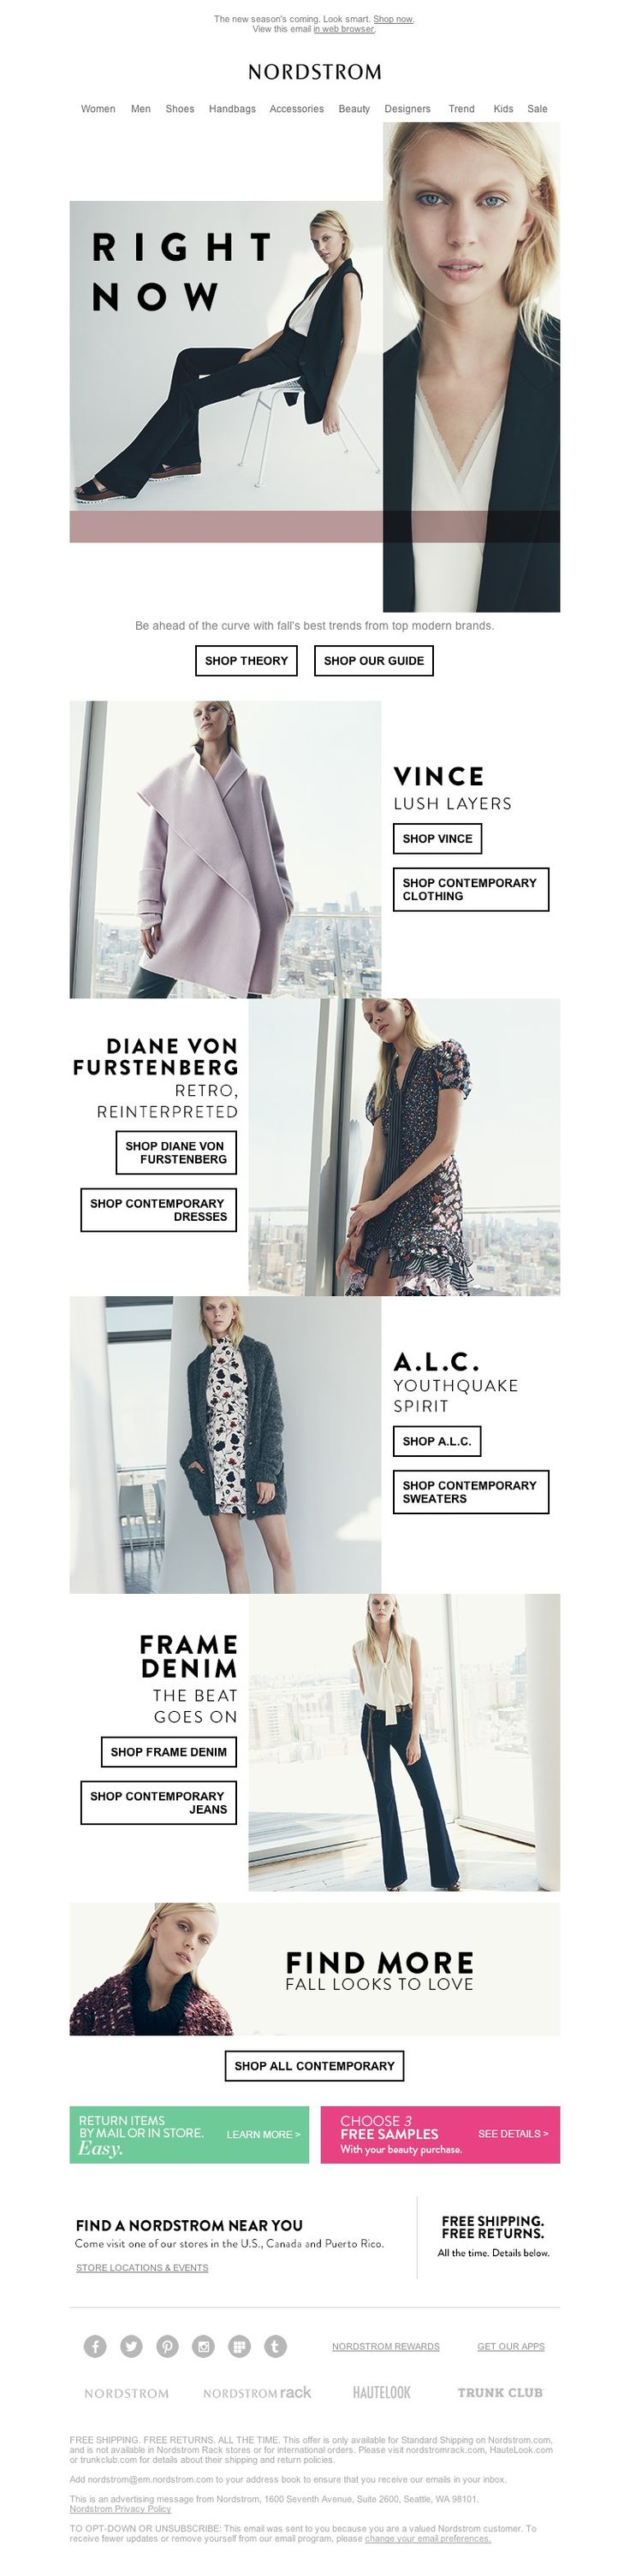 Nordstrom - Theory, Vince, Diane von Furstenberg and more: first look at fall trends